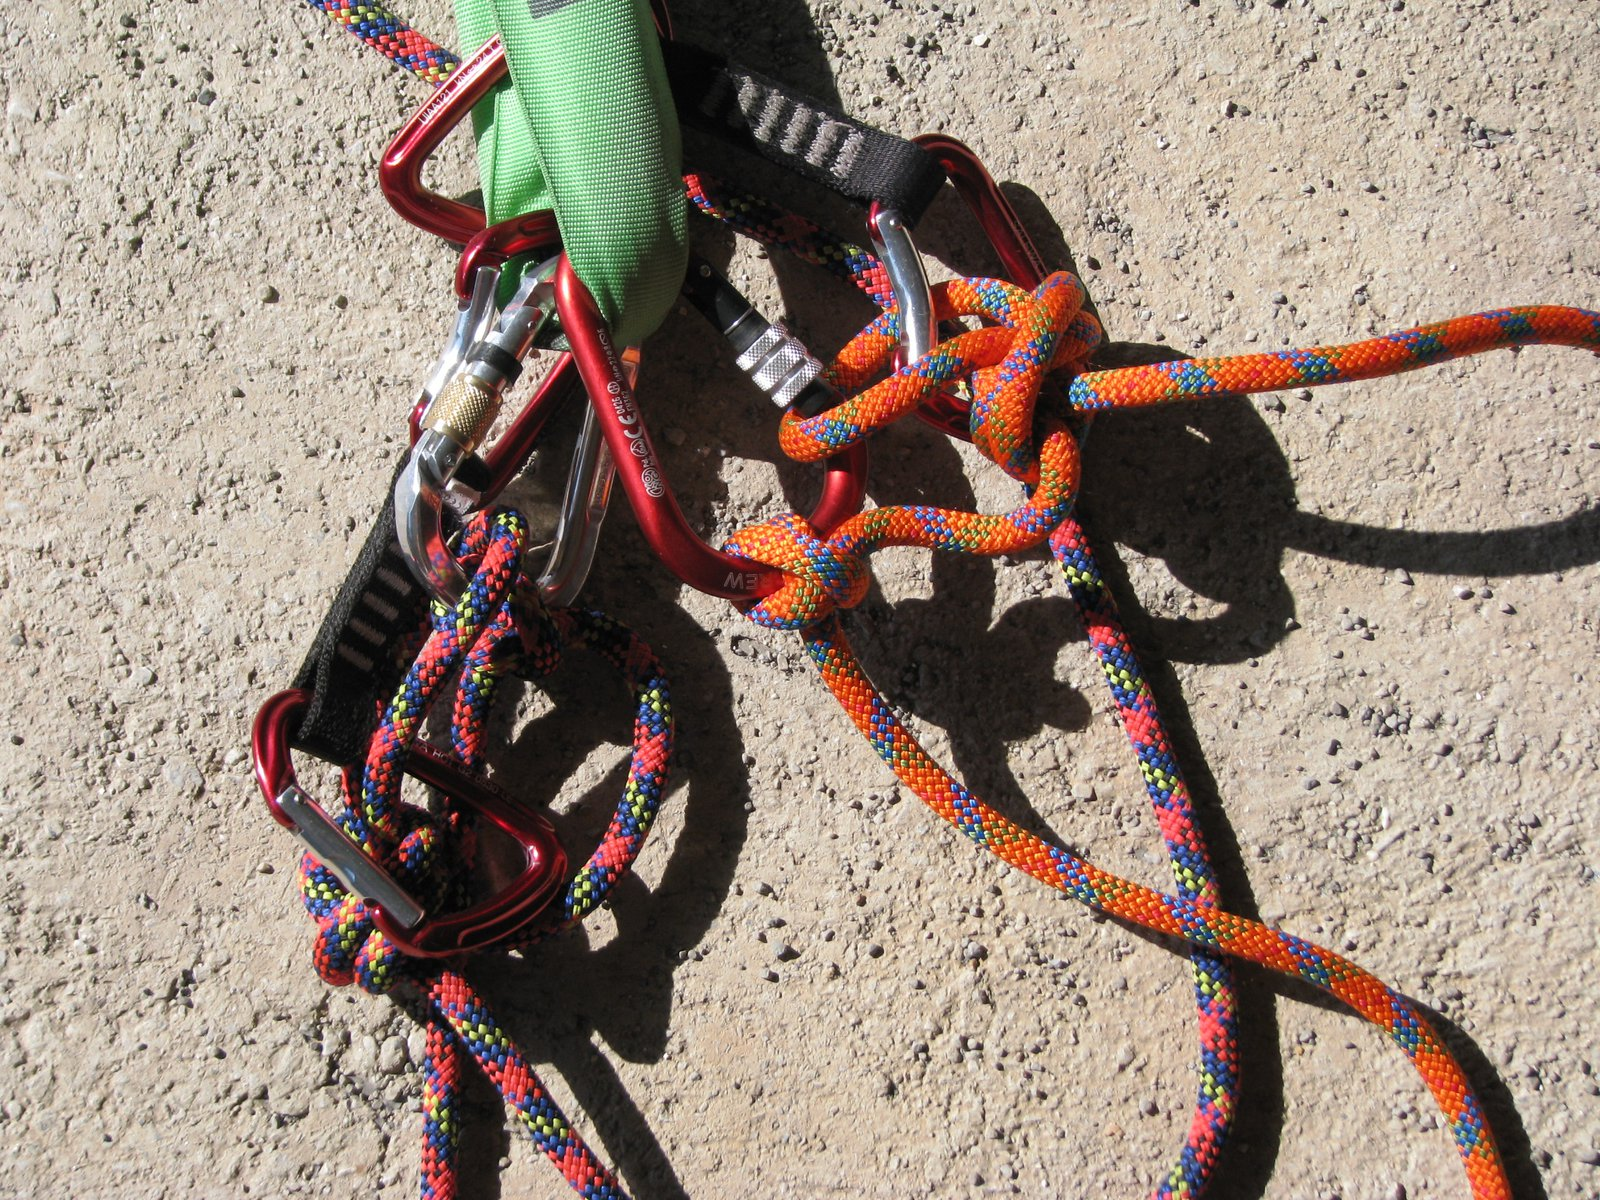 Anchor System for the huge Swing